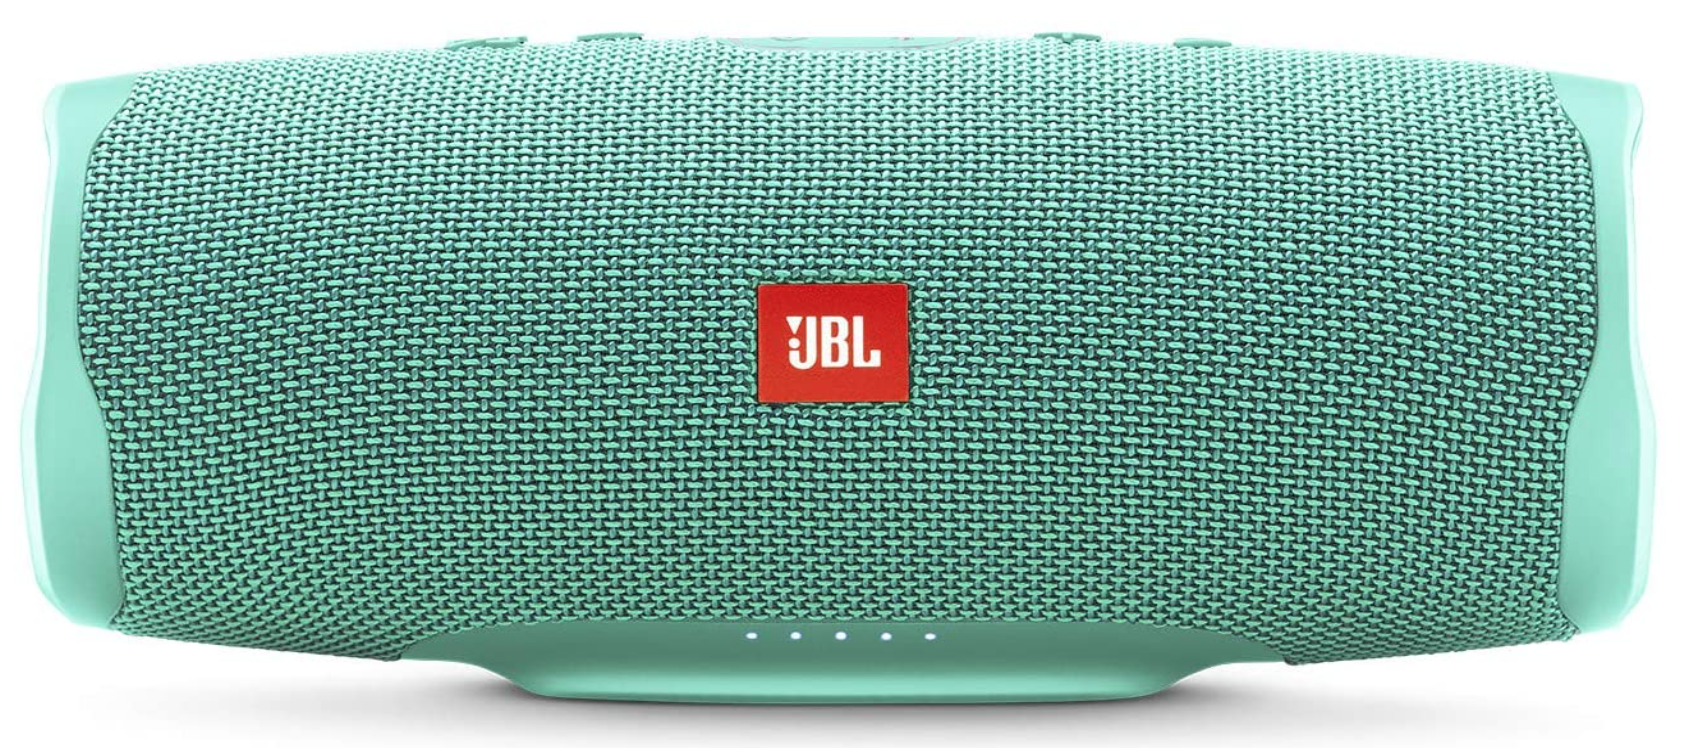 March 2021 Pro Club VIP Prize: JBL Wireless Speaker - You pick the color!